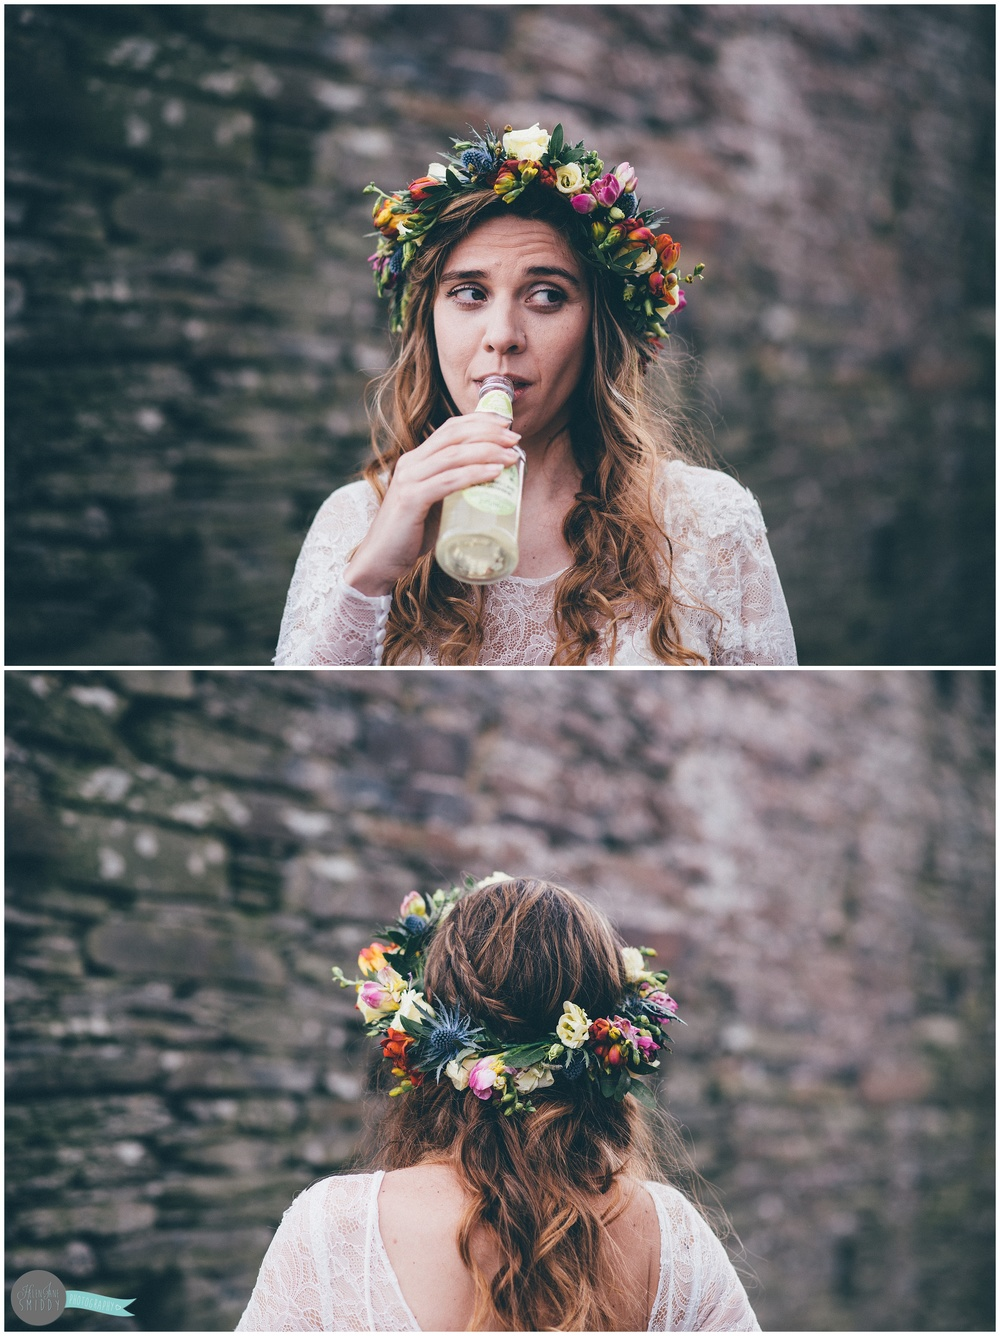 secret-wedding-ceremony-photography-snap-festival-boho-chic-vintage-wales-fforest-shabby-chic-cheshire-bride